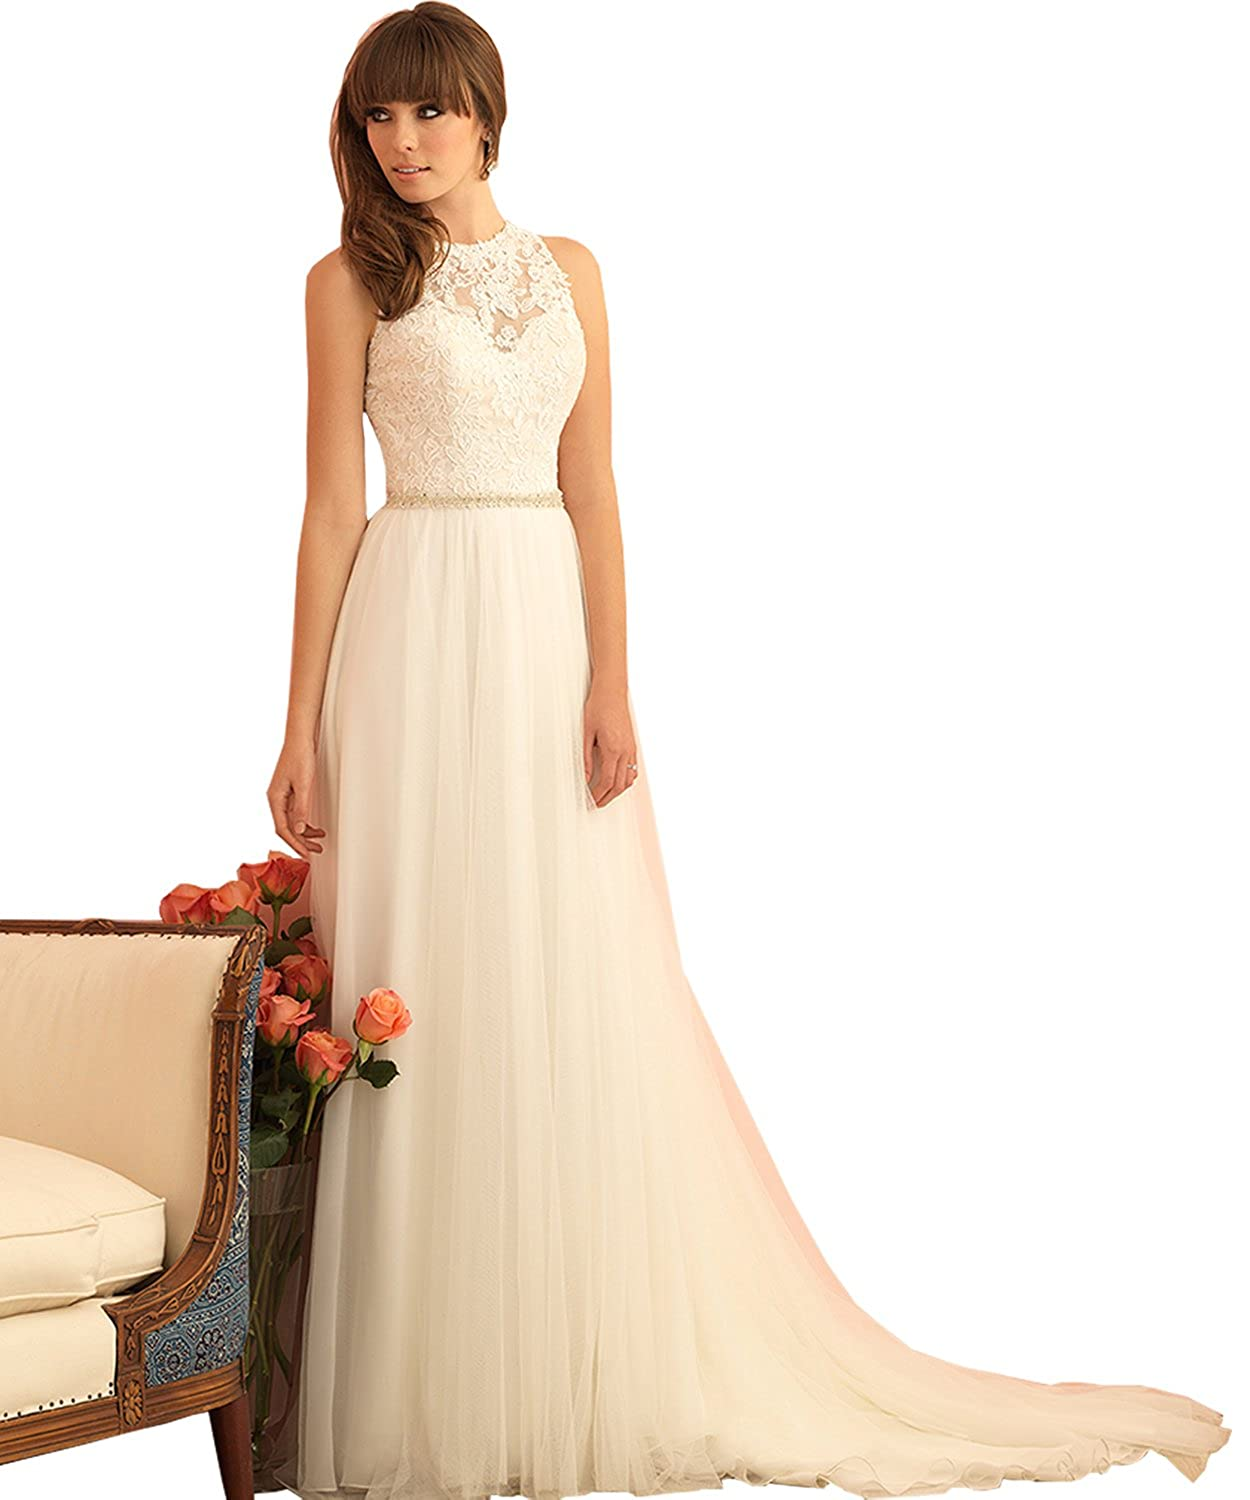 Womens High Neck A Line Formal Tulle Lace Wedding Dress For Bride